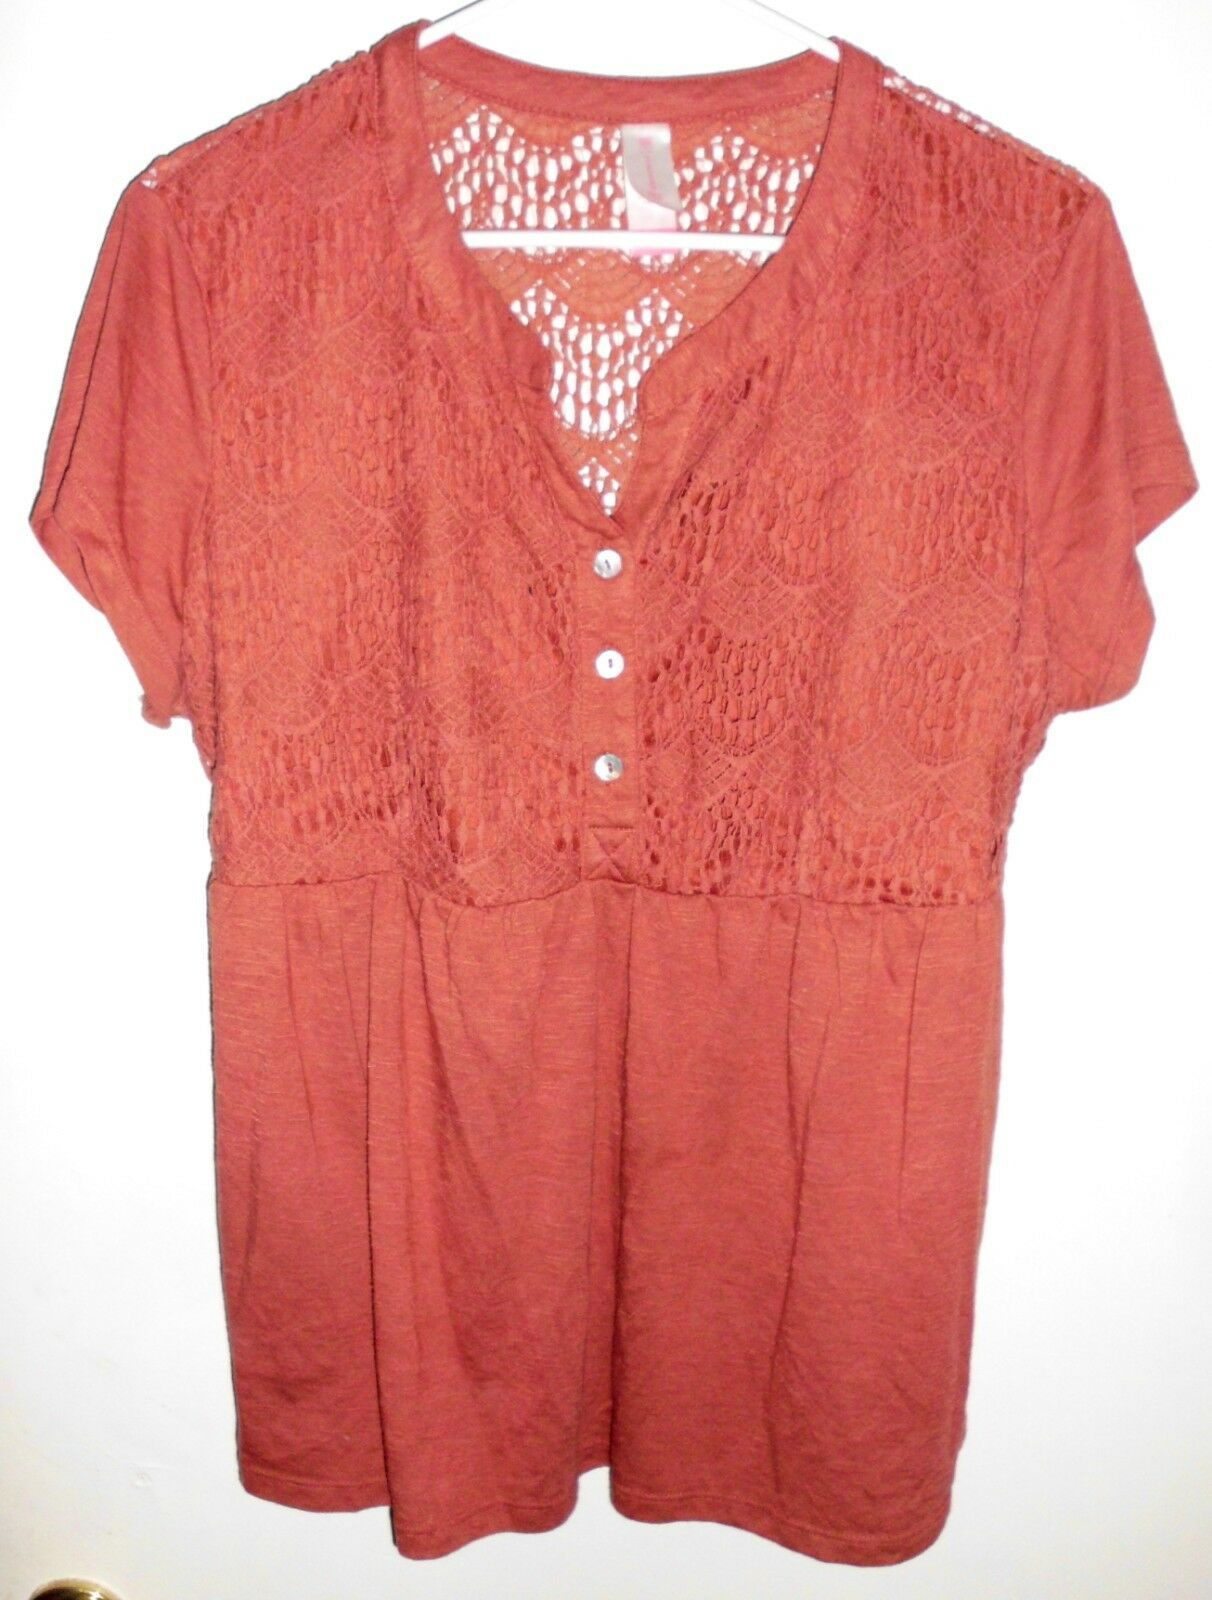 Primary image for NO BOUNDARIES Top Shirt Plus Sz 2XL Women Short Sleeve Half Lace Lined in Front